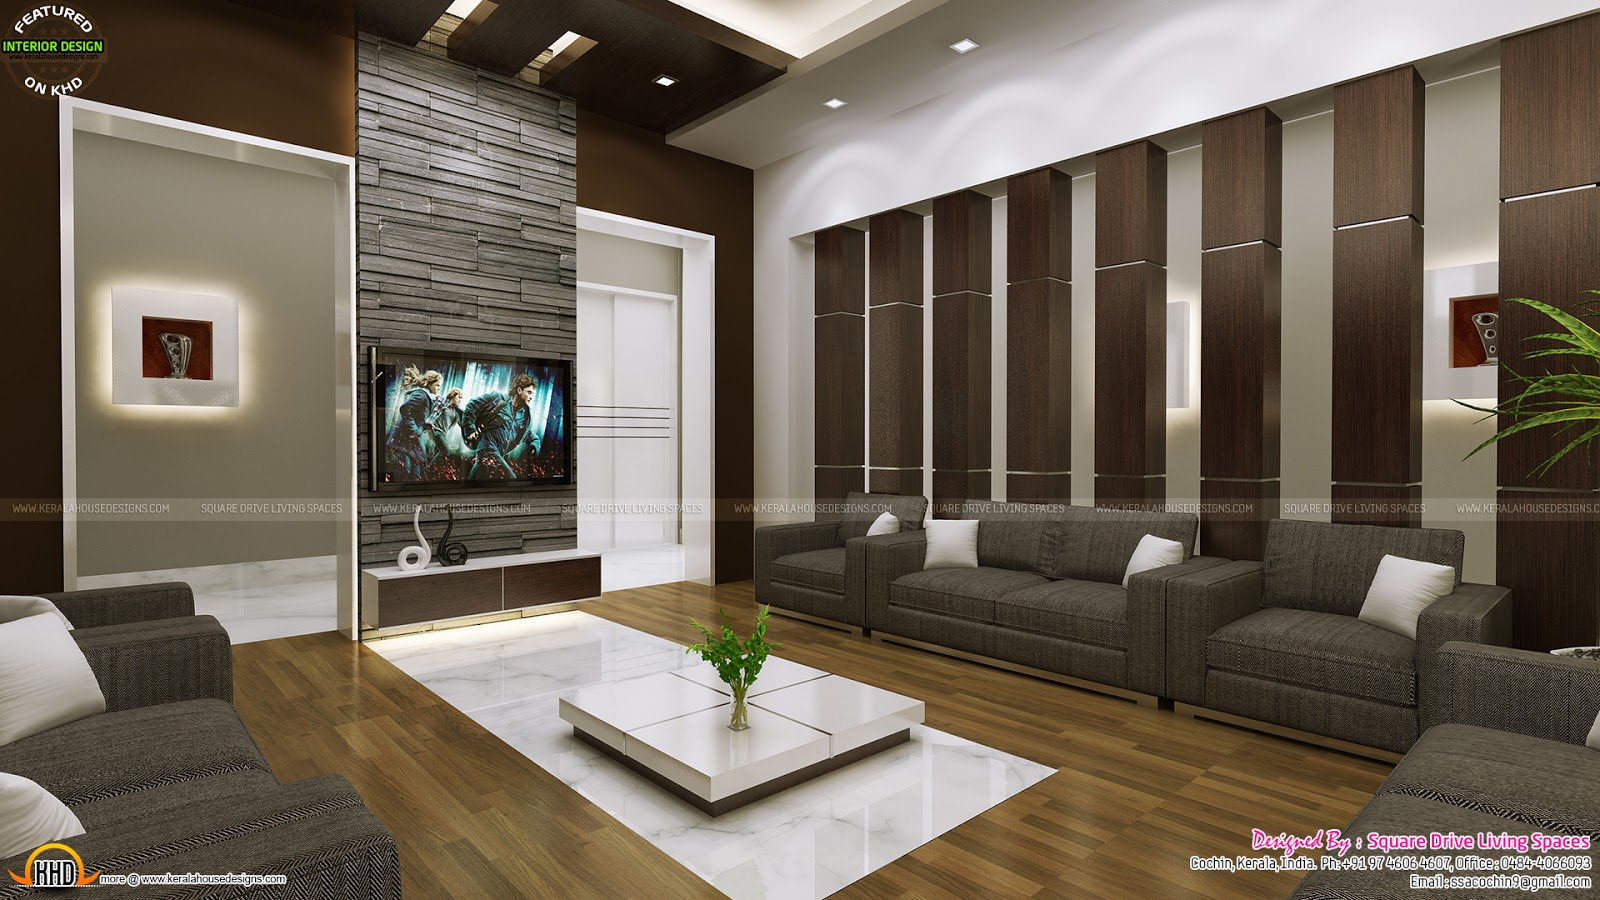 Attractive home interior ideas kerala home design and for Interior designs in house